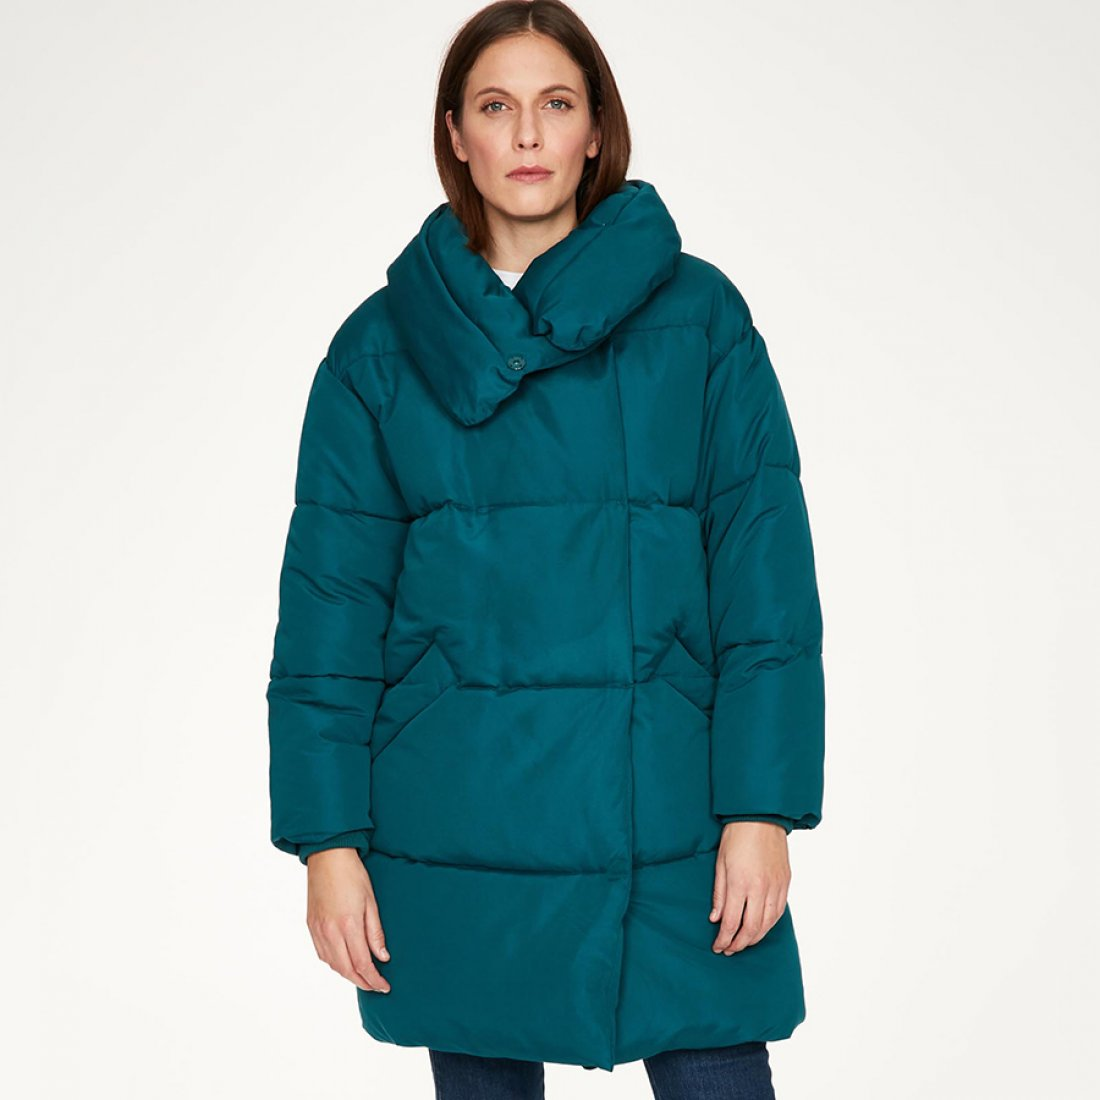 479066-Thought-KINGFISHER-GREEN-Phebe-Puffa-Jacket-Recycled-Polyester-1